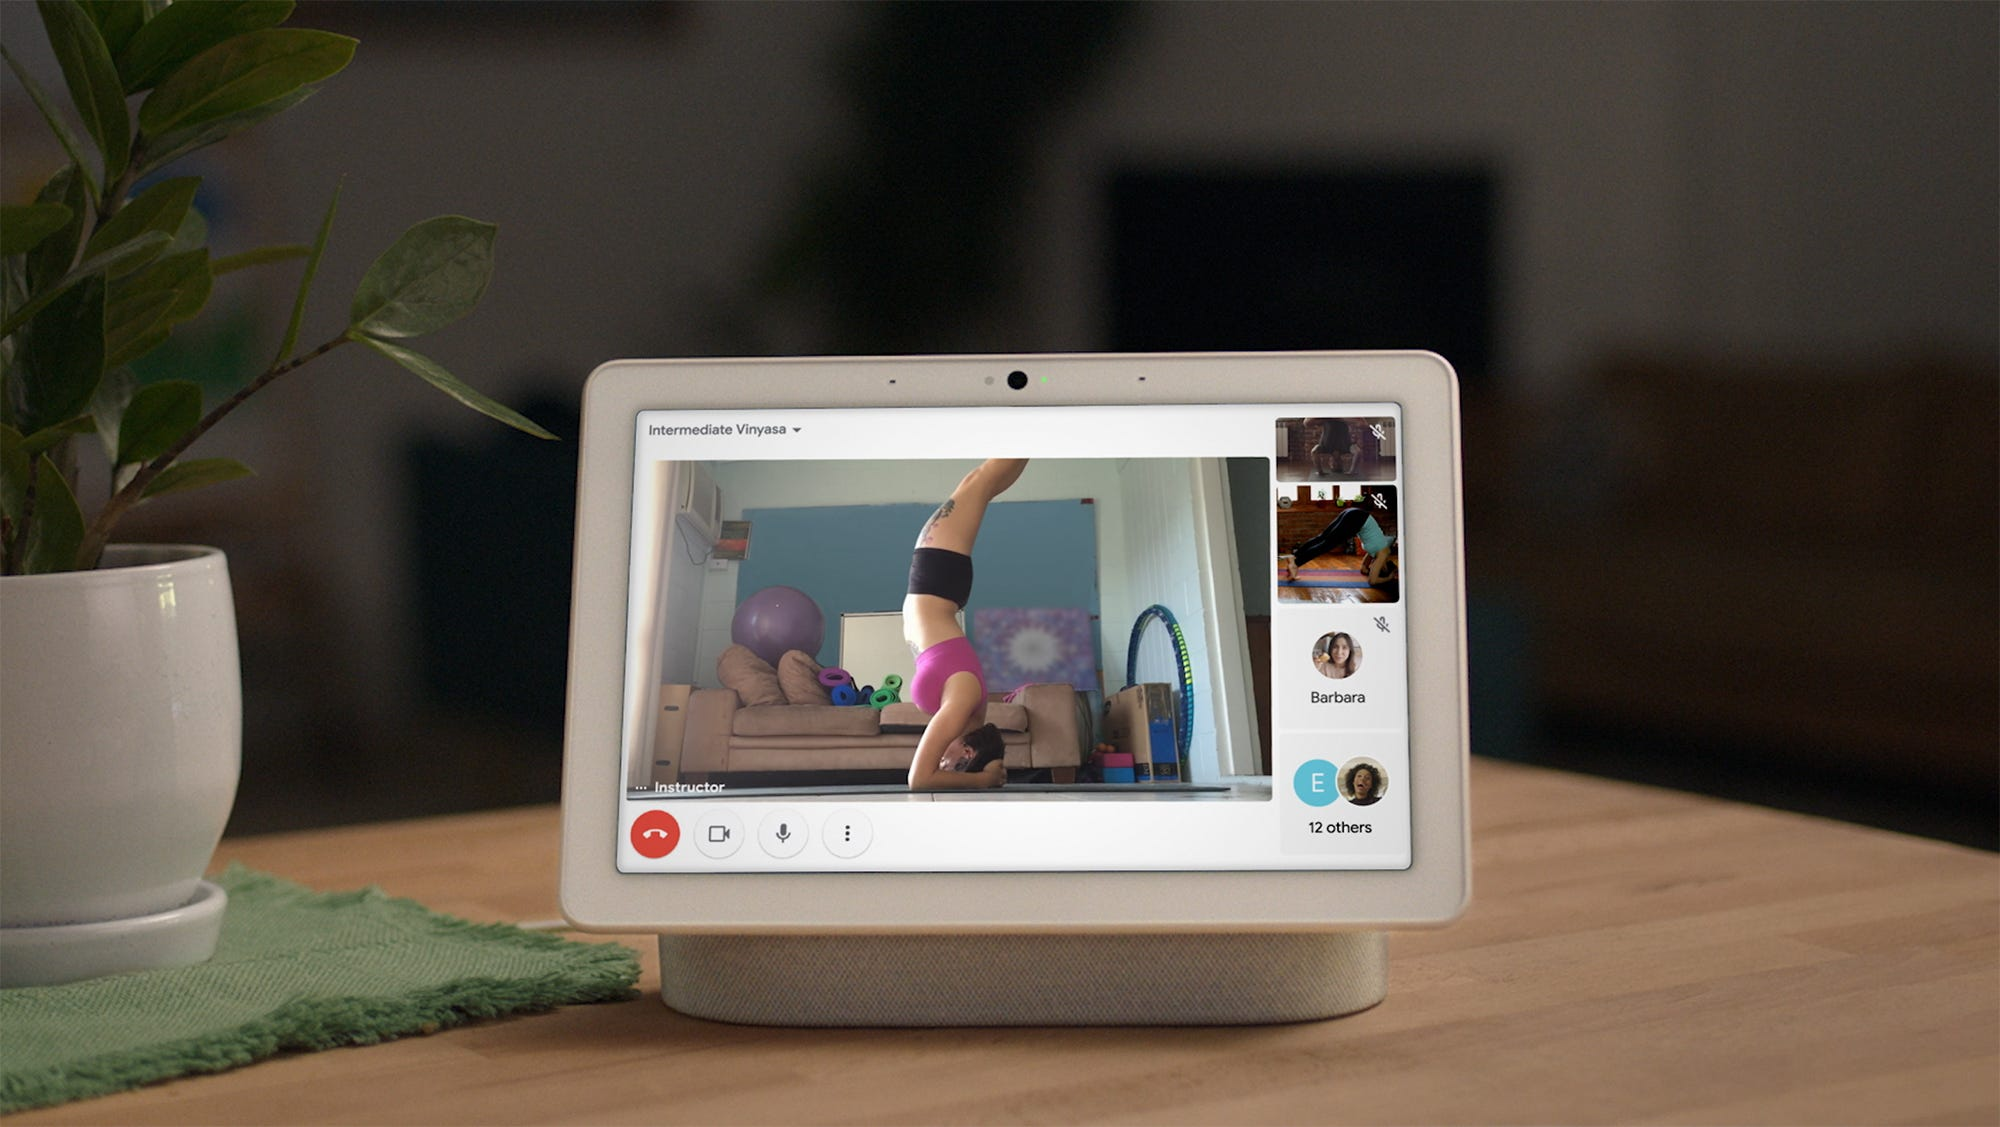 A Google Meet call on a Nest Hub Max with one person doing a handstand.